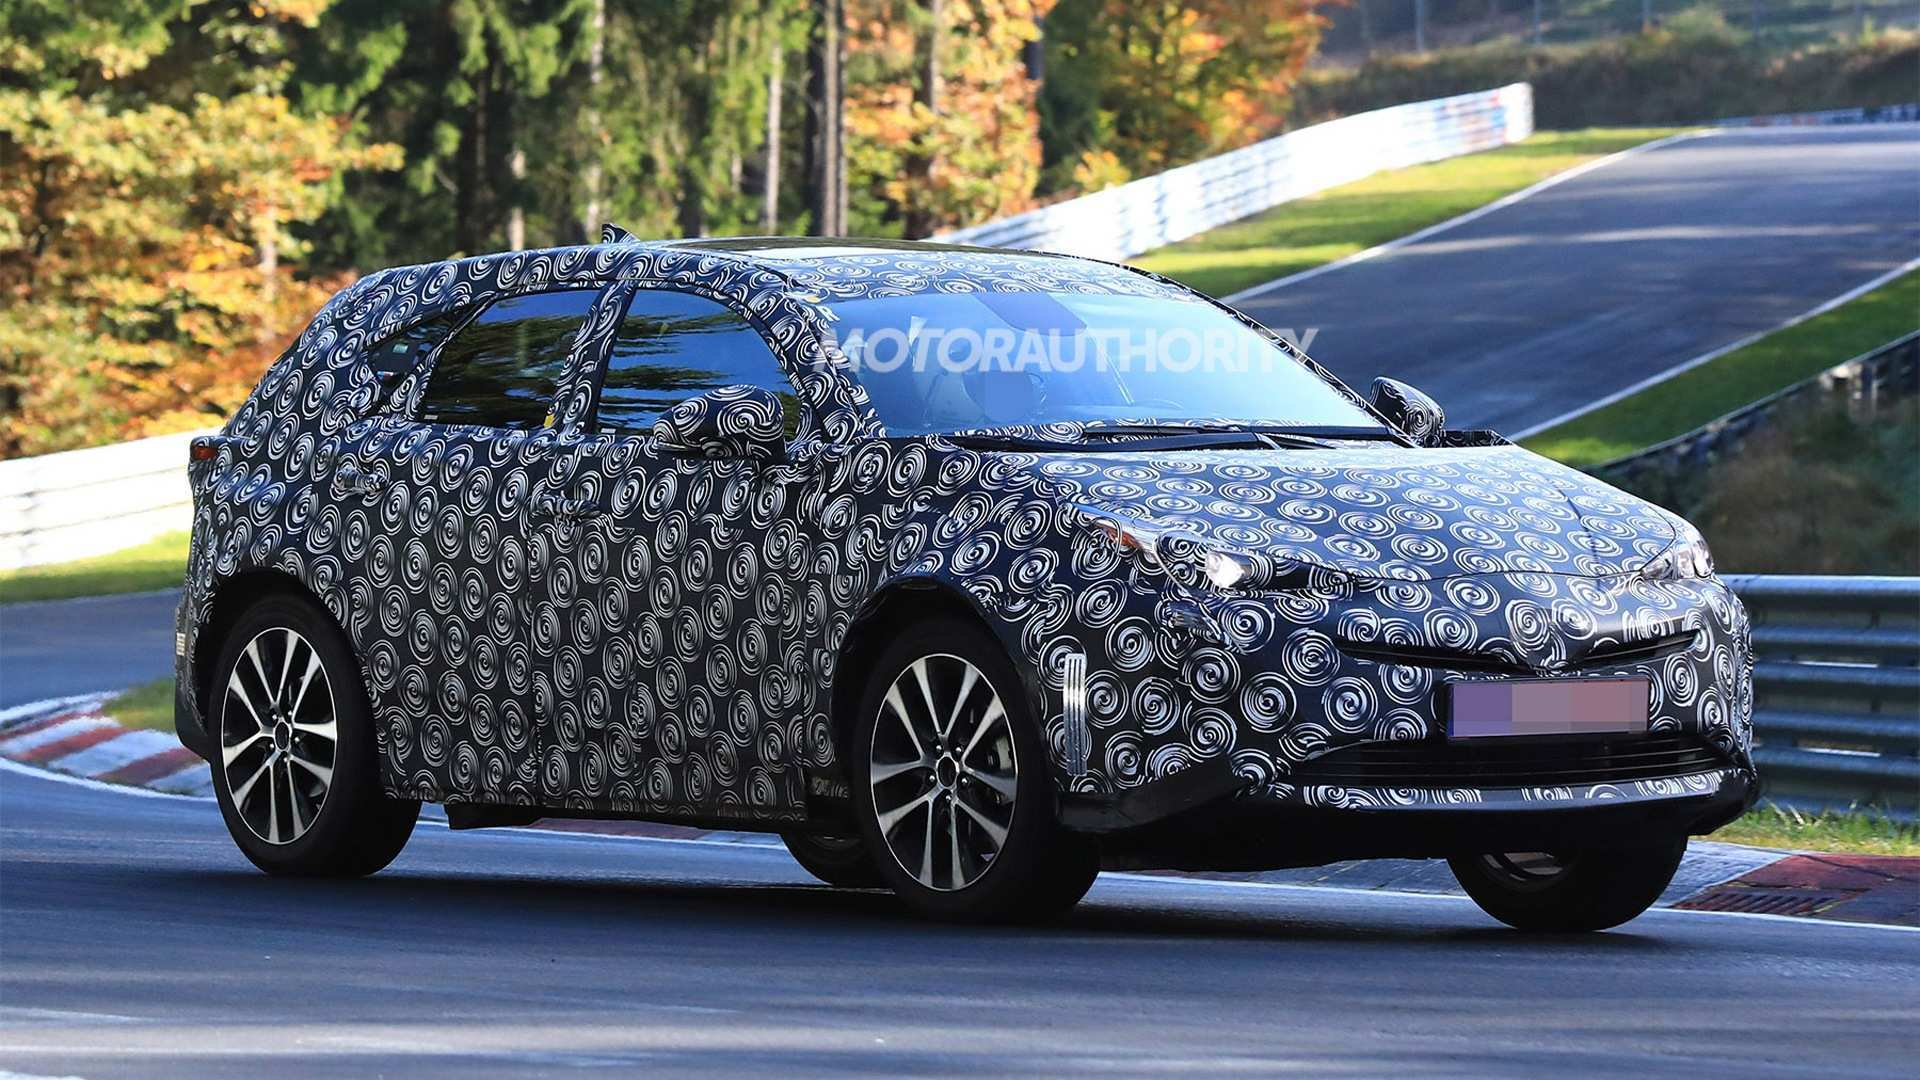 51 Gallery of 2020 Spy Shots Toyota Prius Speed Test for 2020 Spy Shots Toyota Prius